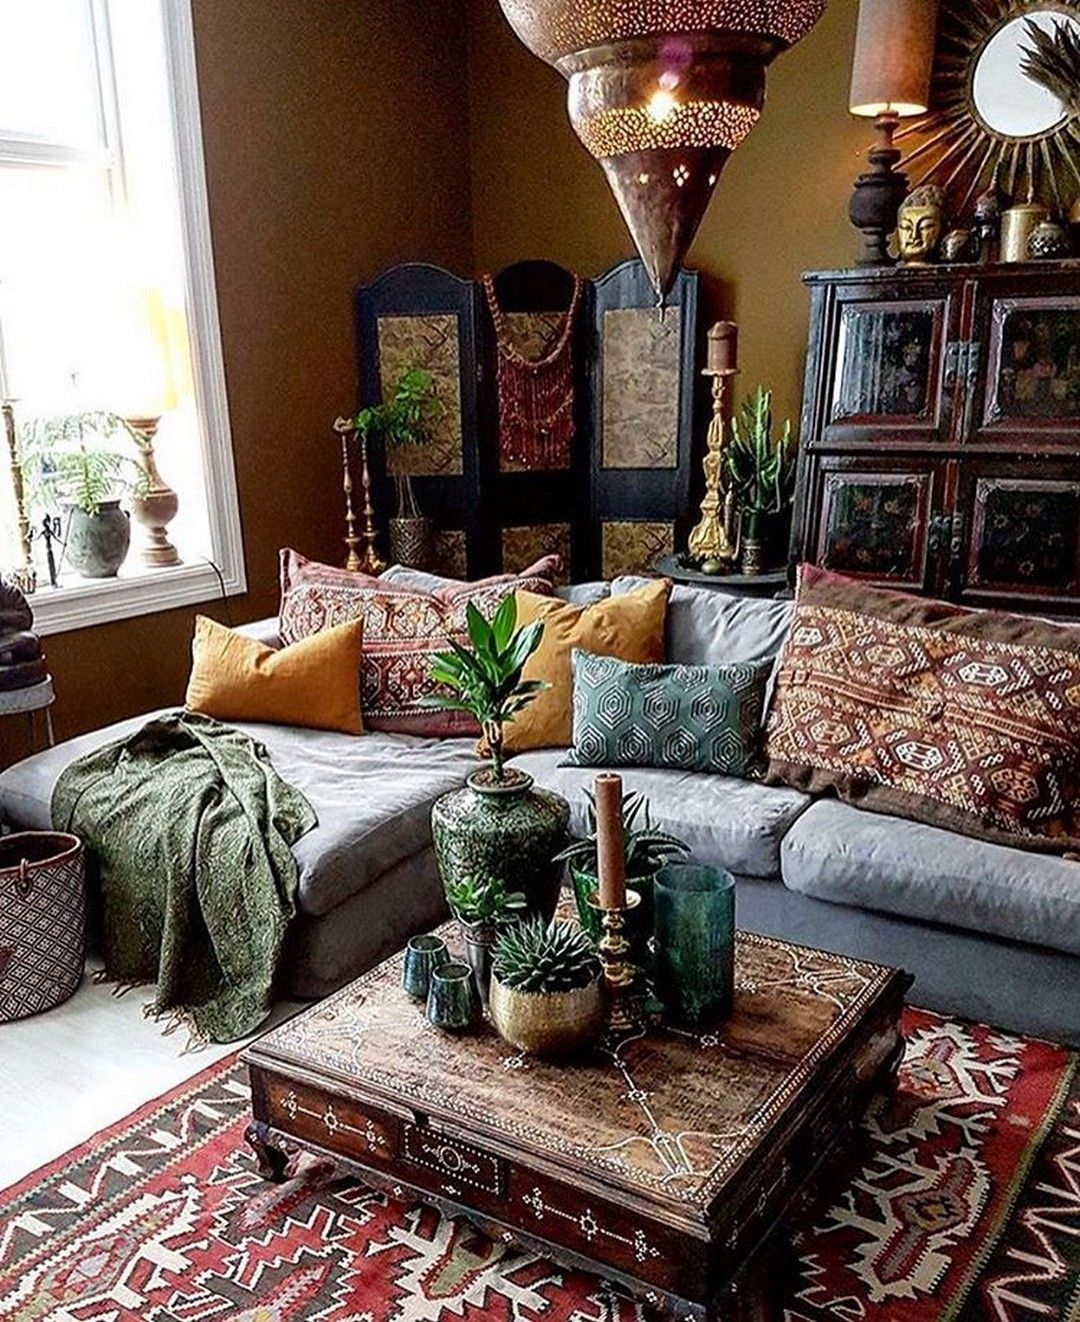 DIY Indoor Bohemian Decorating Ideas